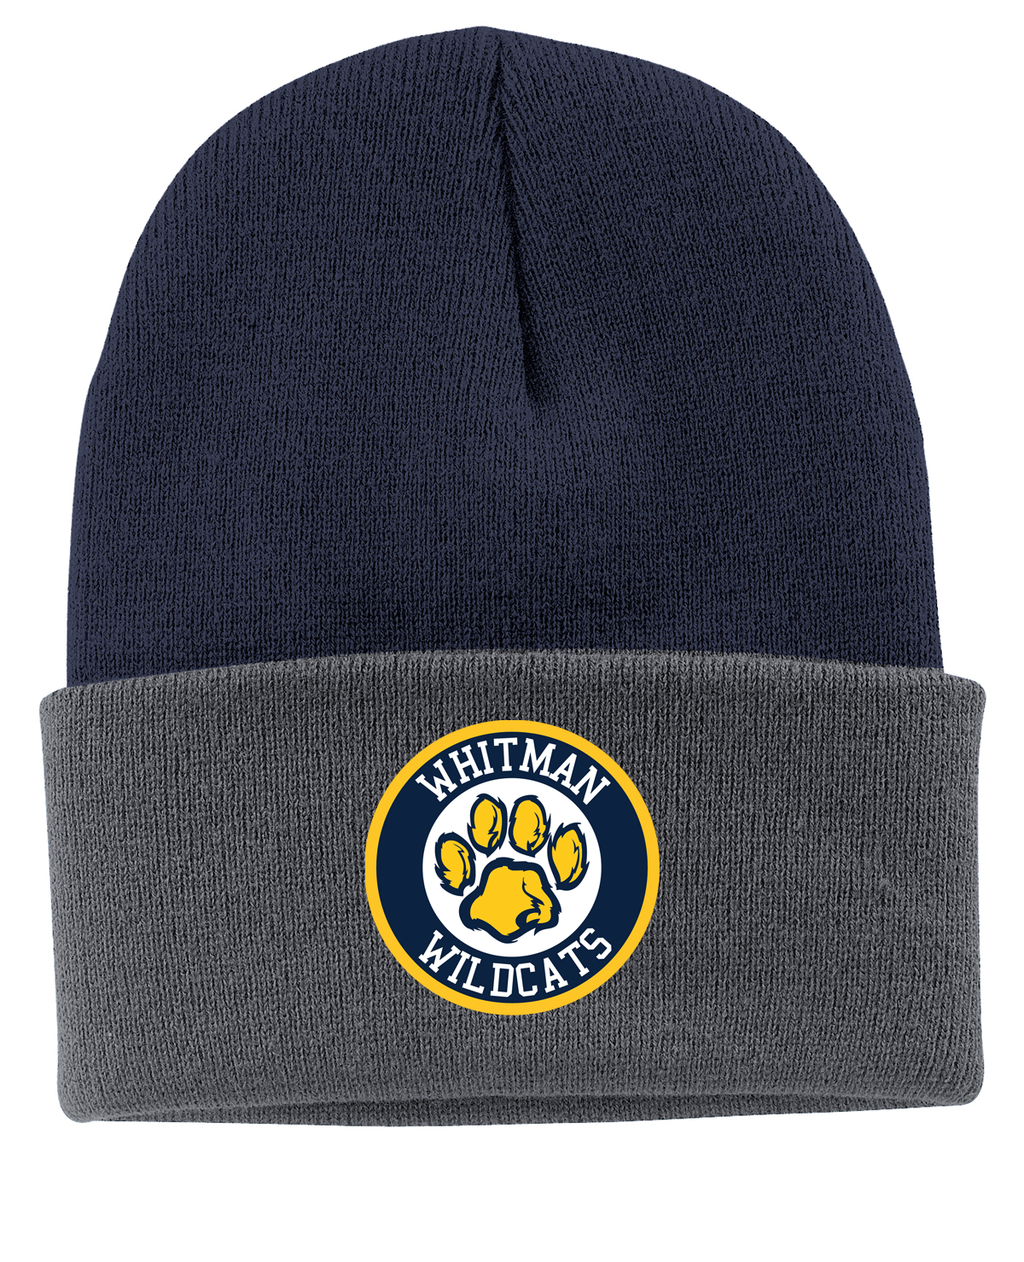 Whitman Wildcats Knit Beanie